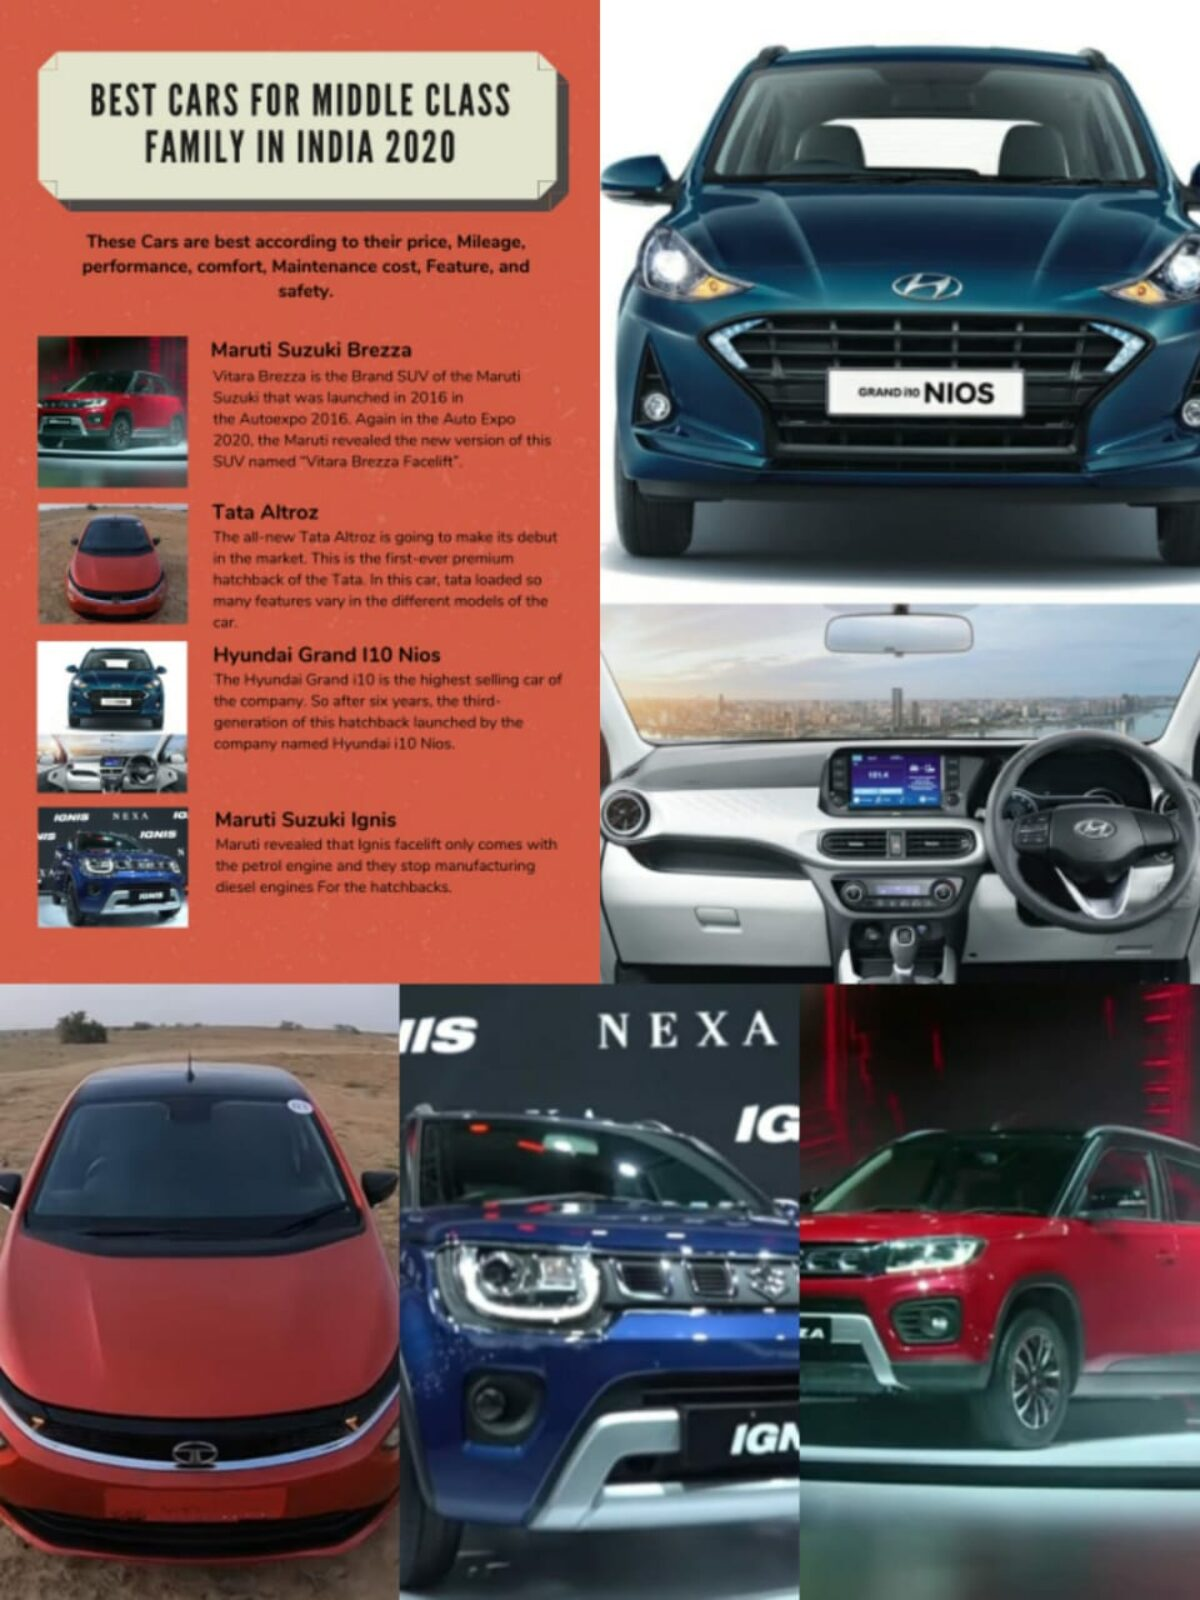 18 Best Cars For Middle Class Family In India Dec 2020